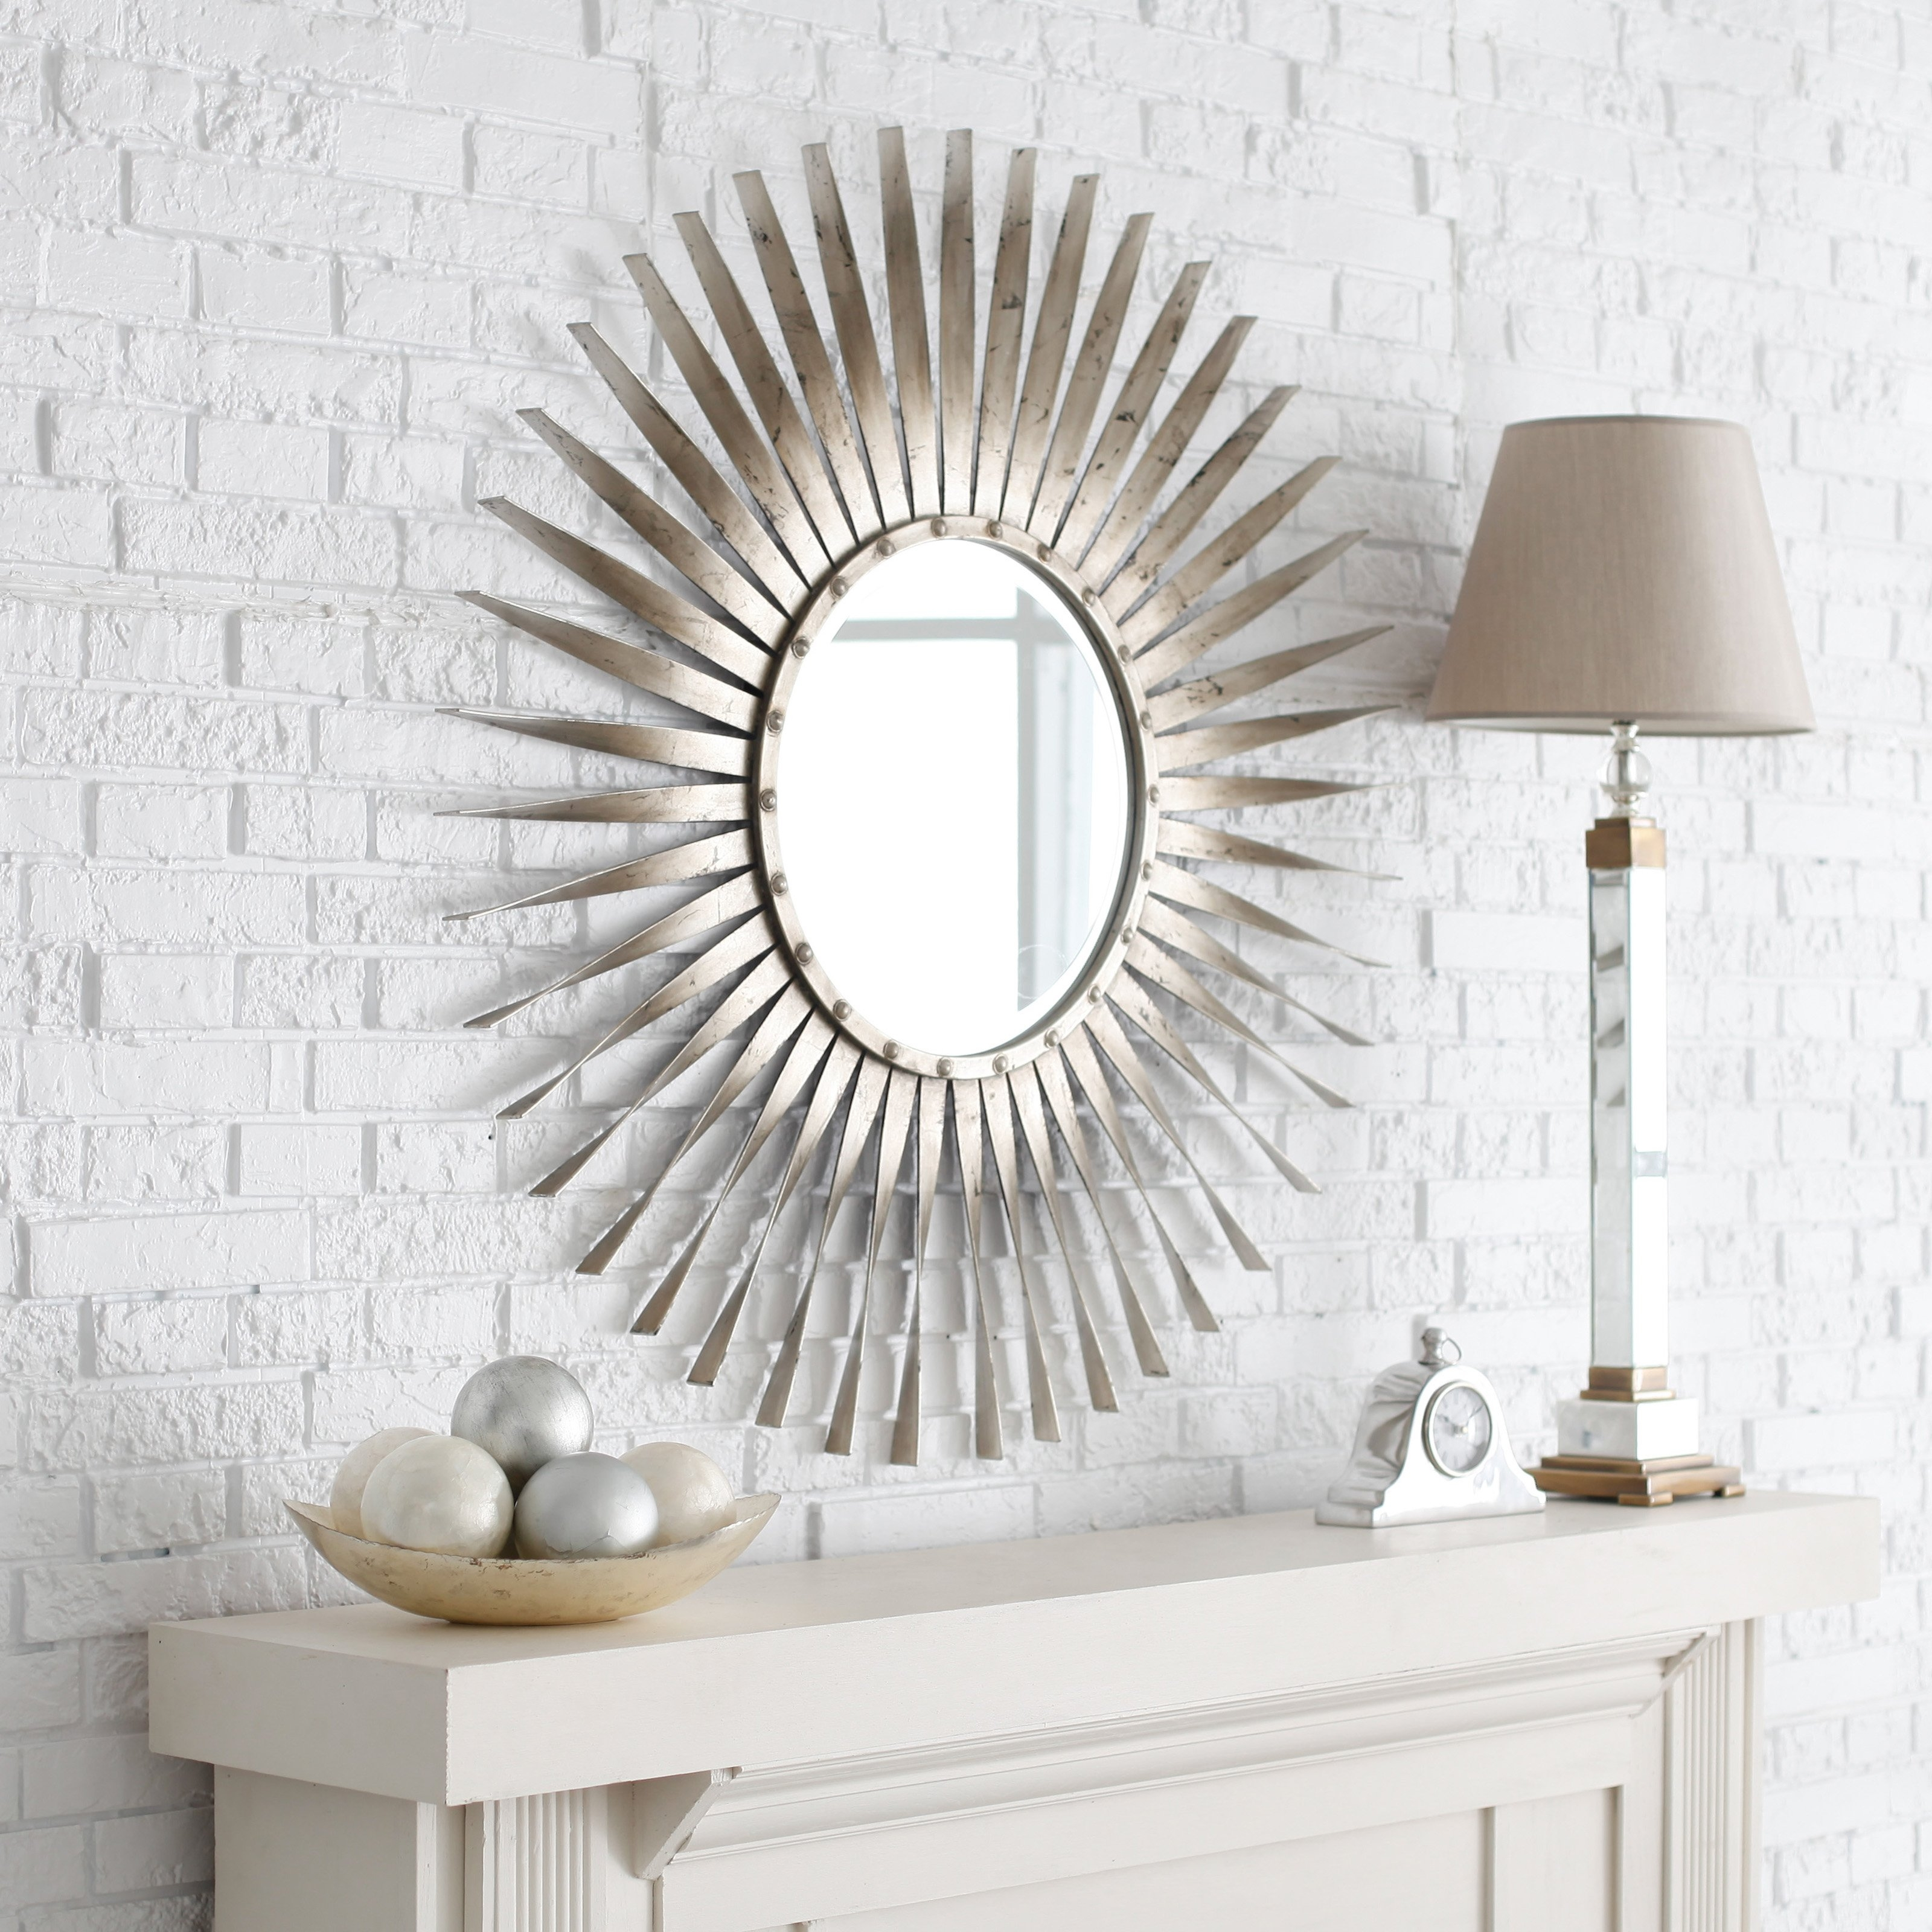 Silver Wall Mirrors Decorative Inarace With Extra Large Sunburst Mirror (View 3 of 15)